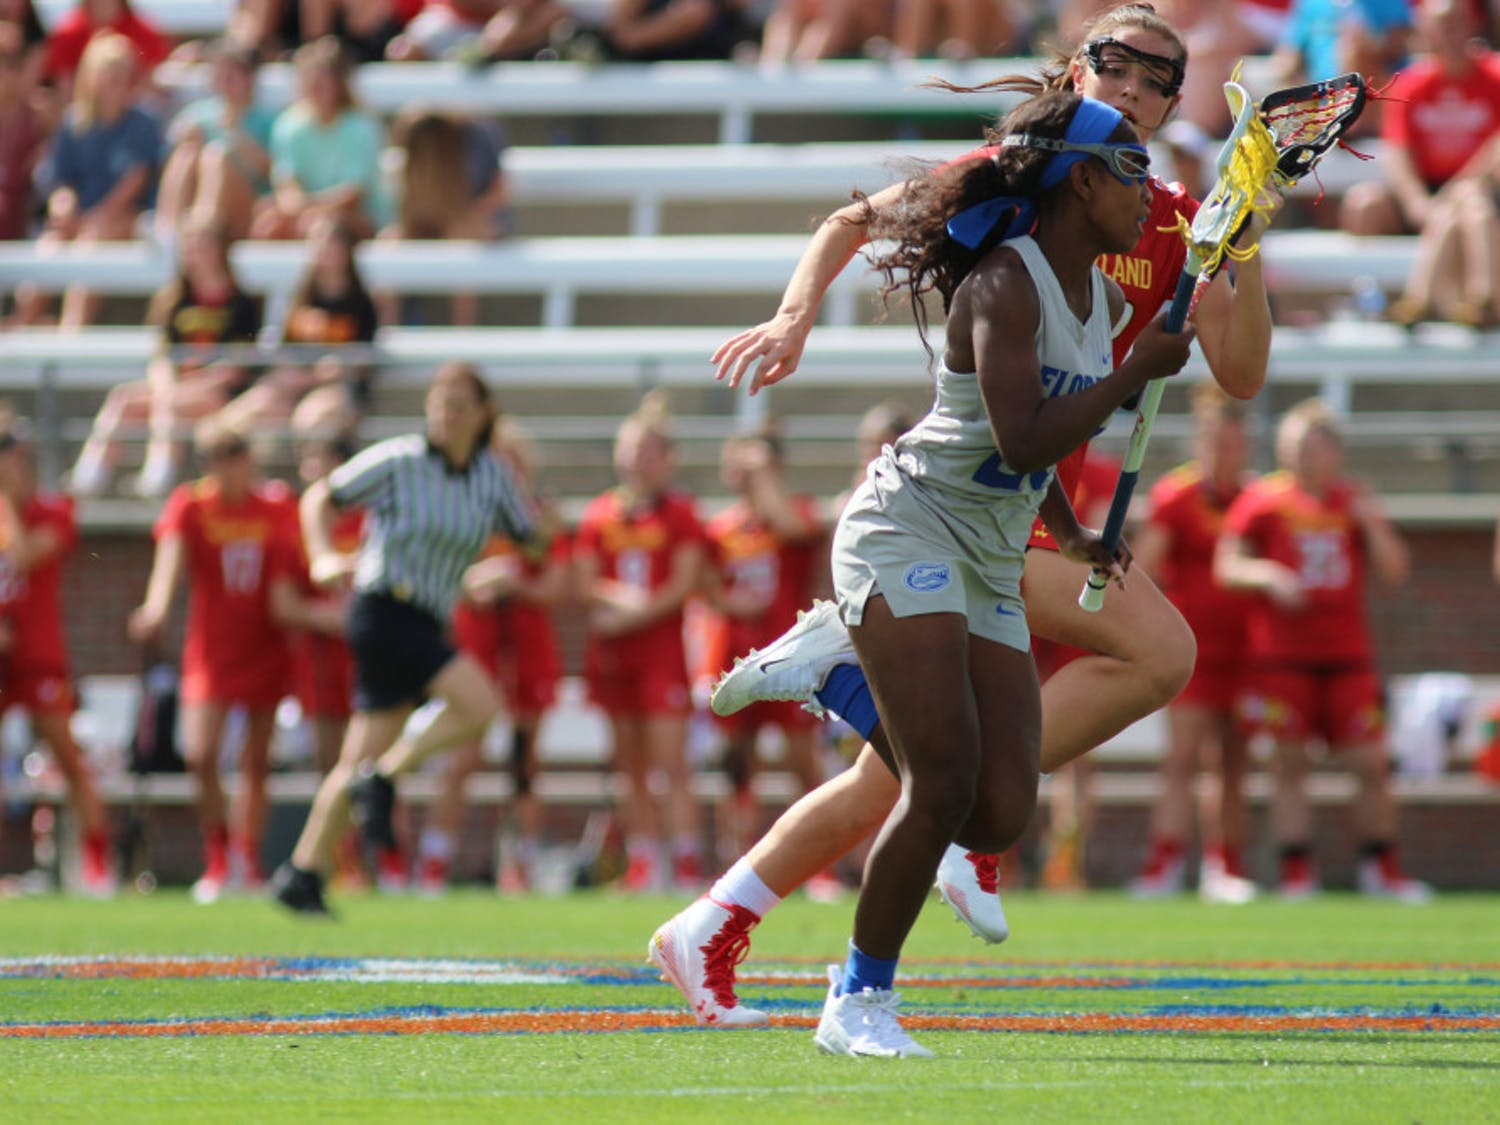 Senior defenderAniya Flanagan forced three turnovers in Florida's win against Temple on Wednesday.